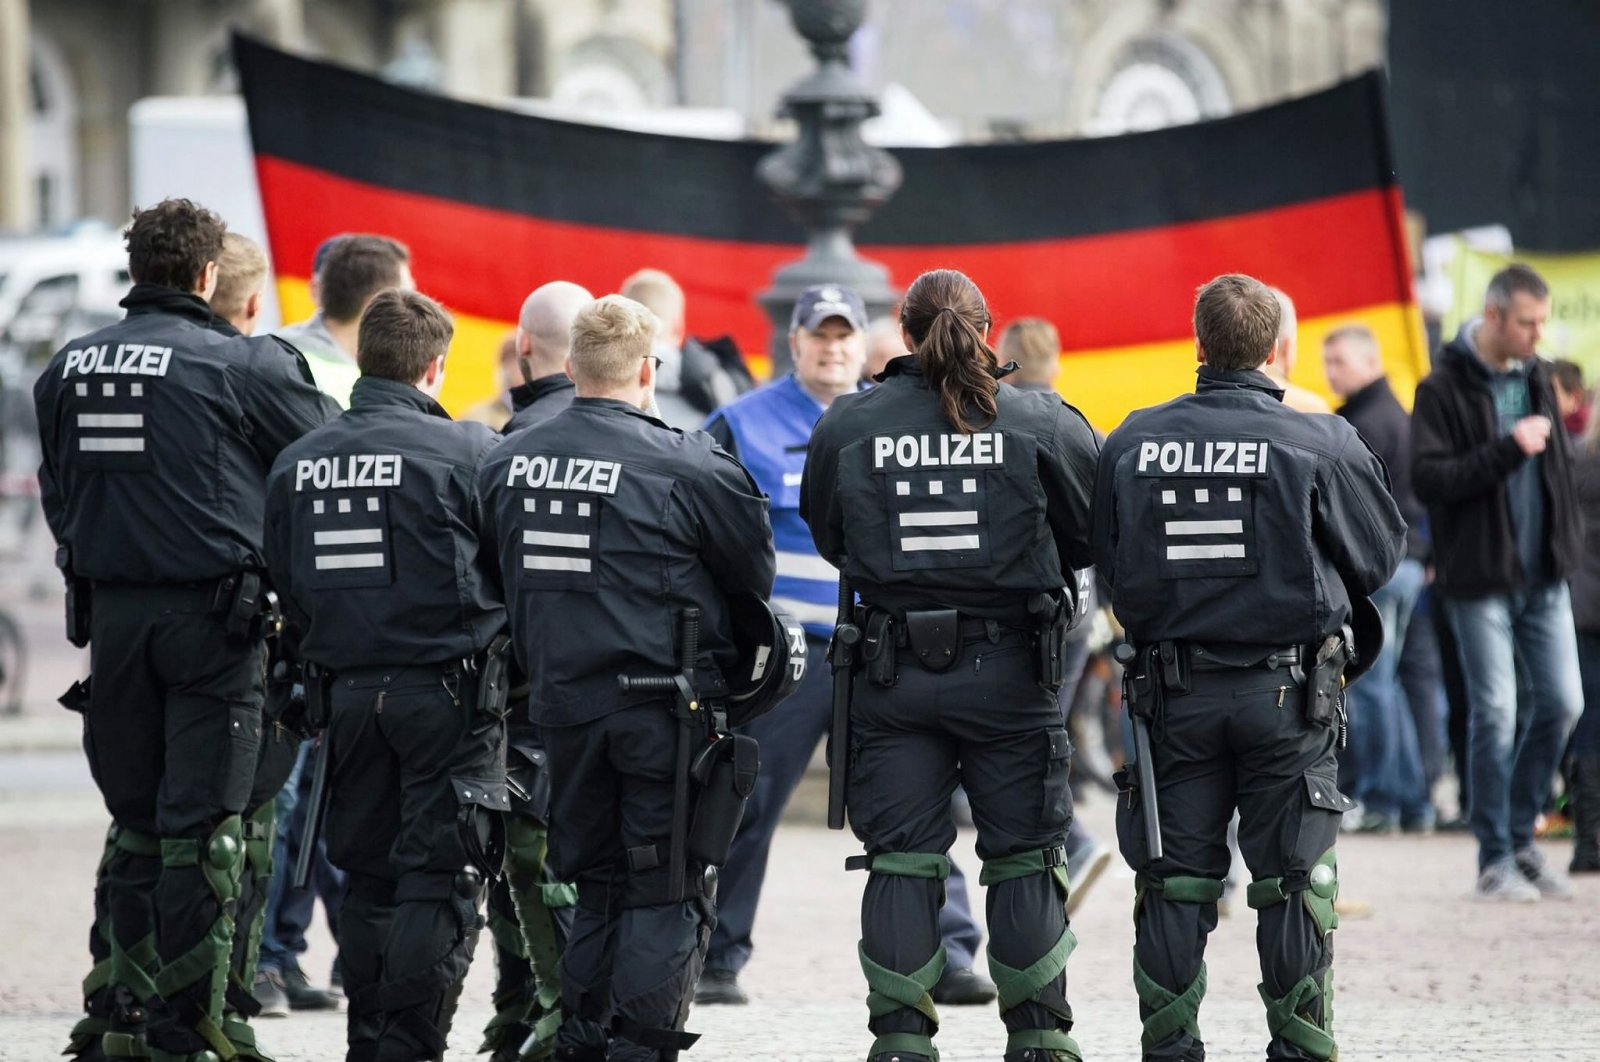 Thousands of supporters of the anti-migrant organization Pegida gathered in the east German city of Dresden to celebrate the second anniversary of the group's founding, Oct. 17, 2016. (Sabah File Photo)